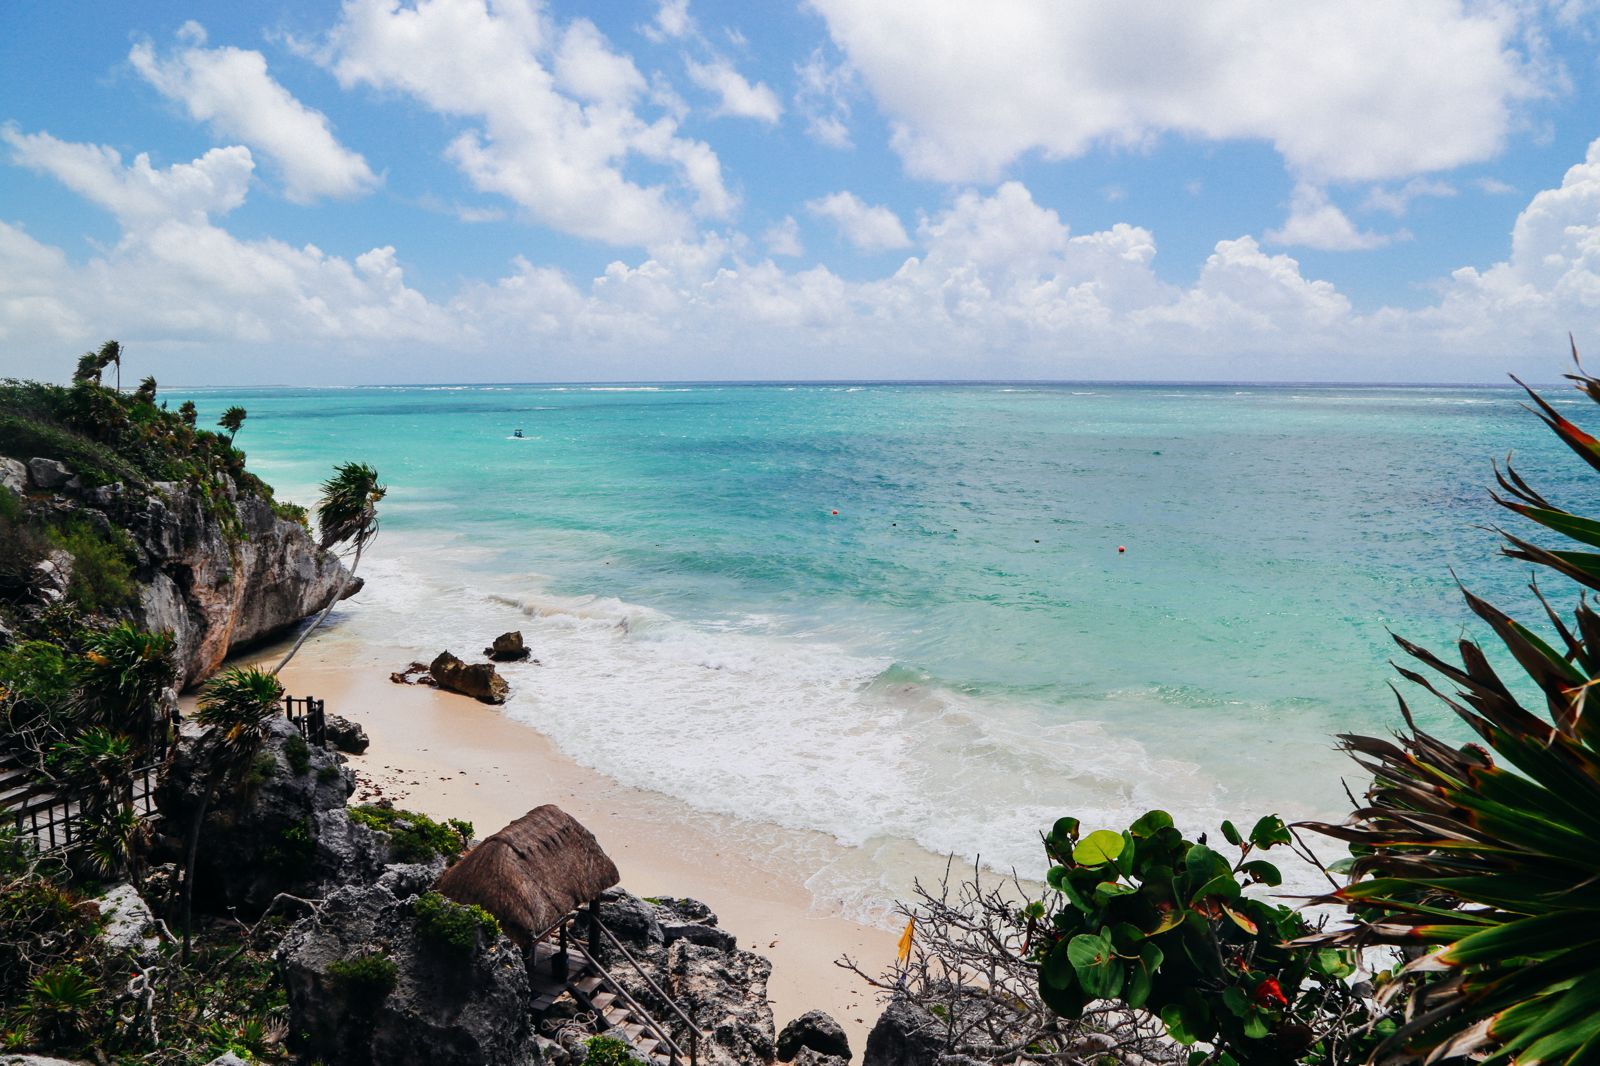 9 Things To Do When You Visit Cancun In Mexico That Don't Involve Partying (24)